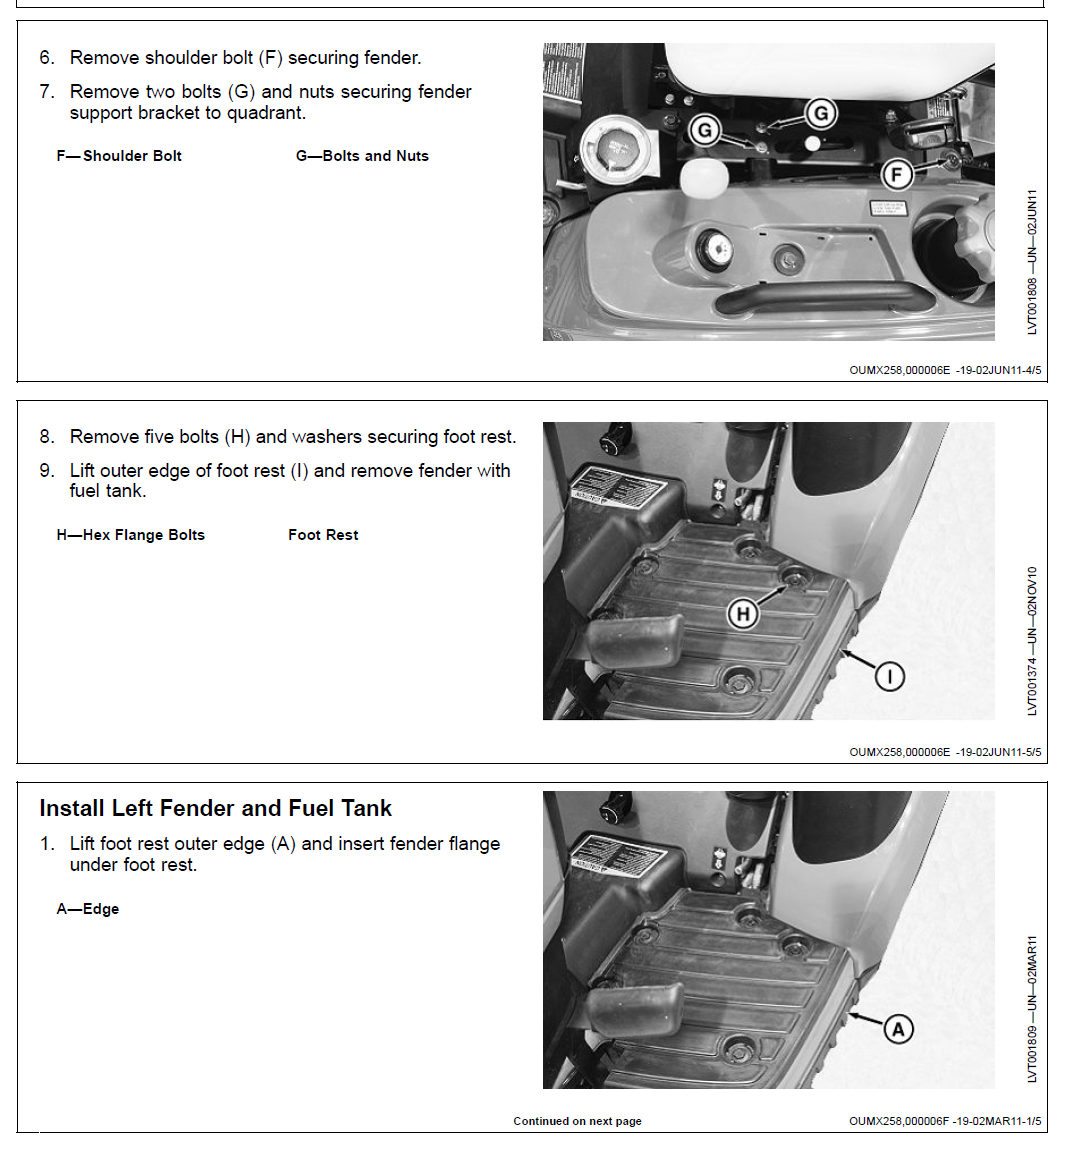 1025R Fuel Tank Removal_2.PNG